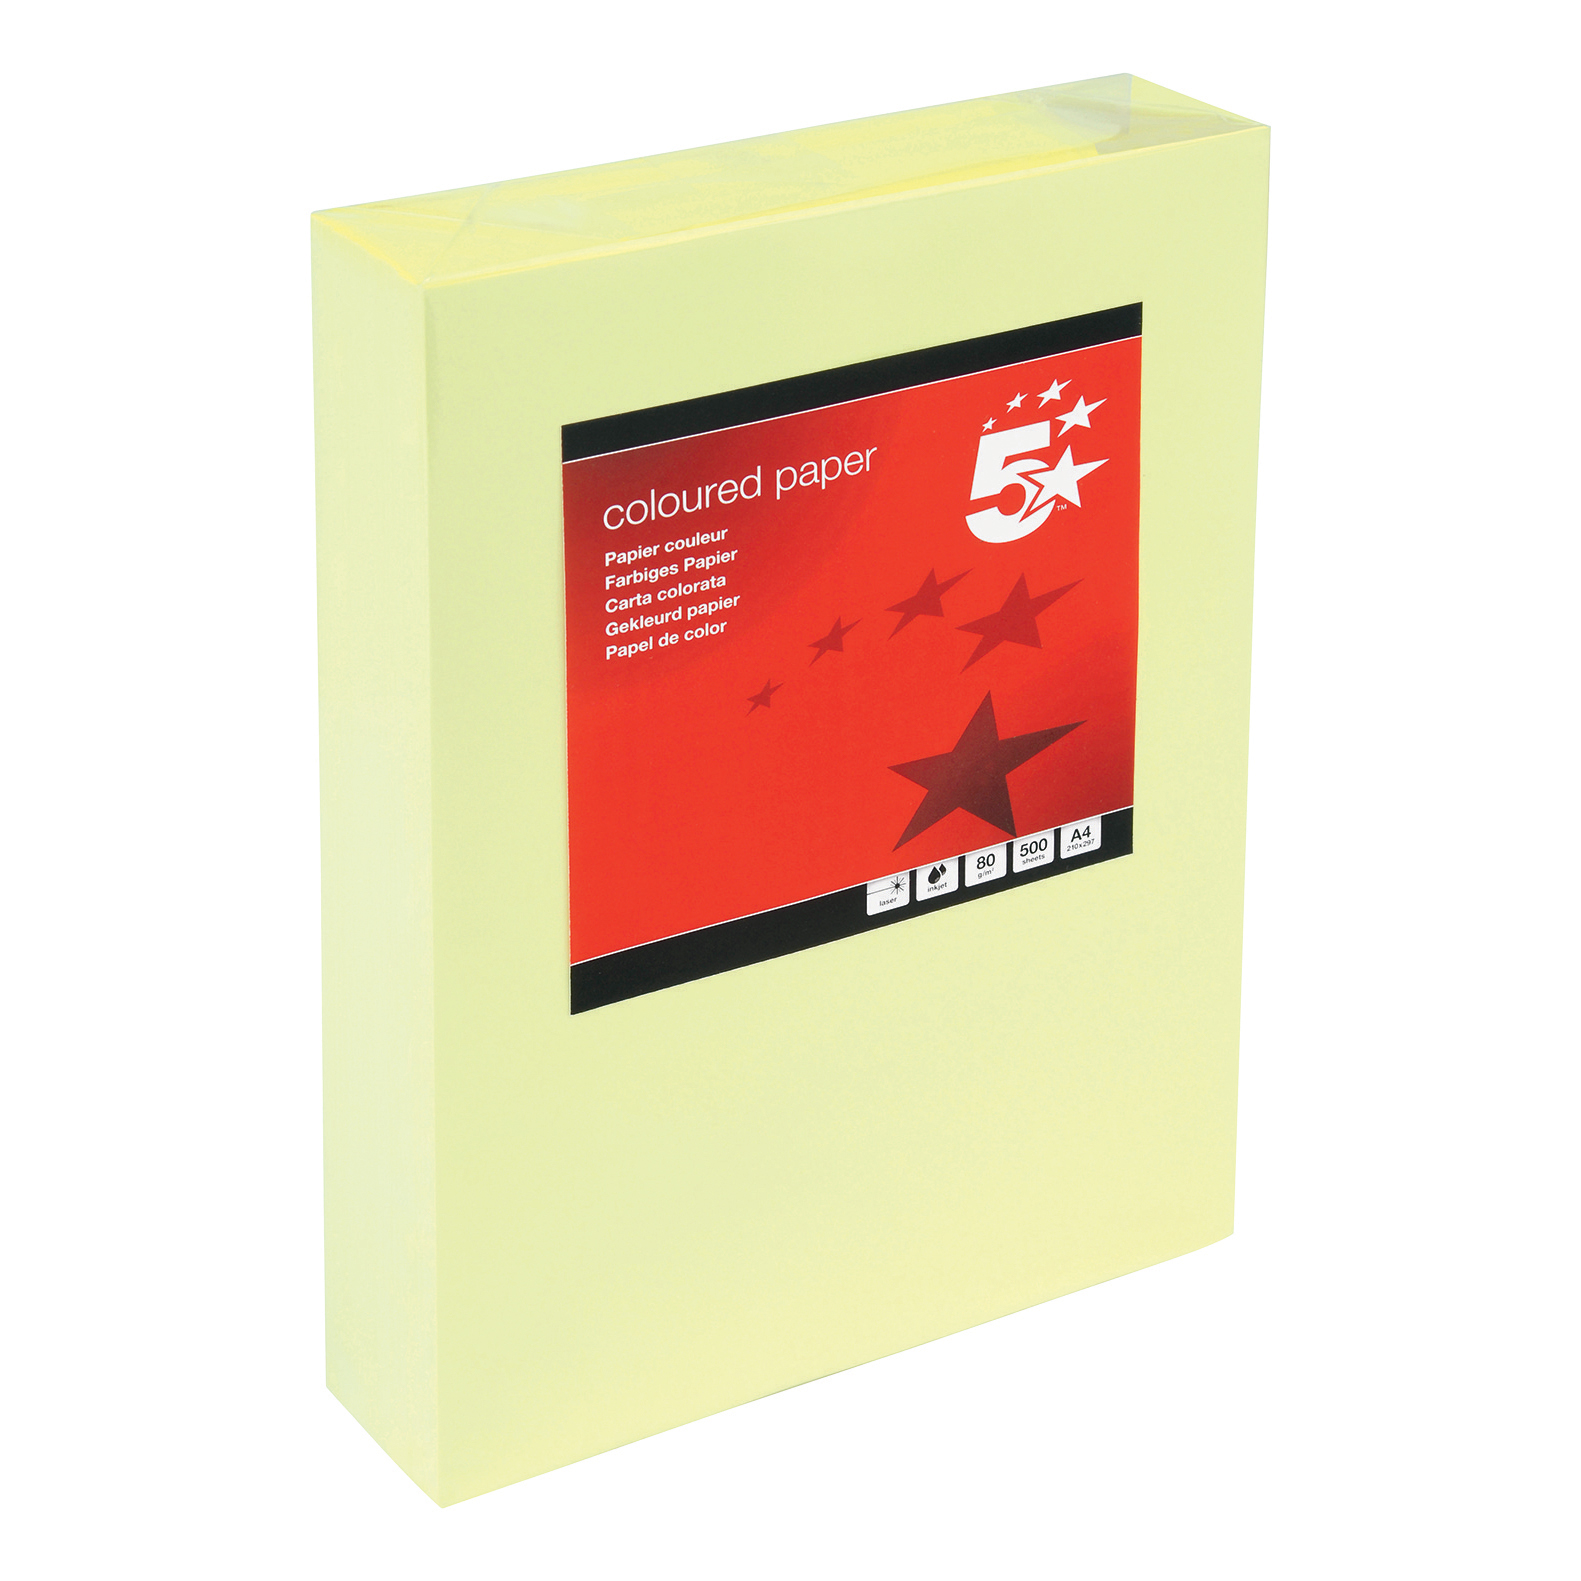 5 Star Office Coloured Copier Paper Multifunctional 80gsm 500 Sheets per Ream A4 Yellow 1 Ream